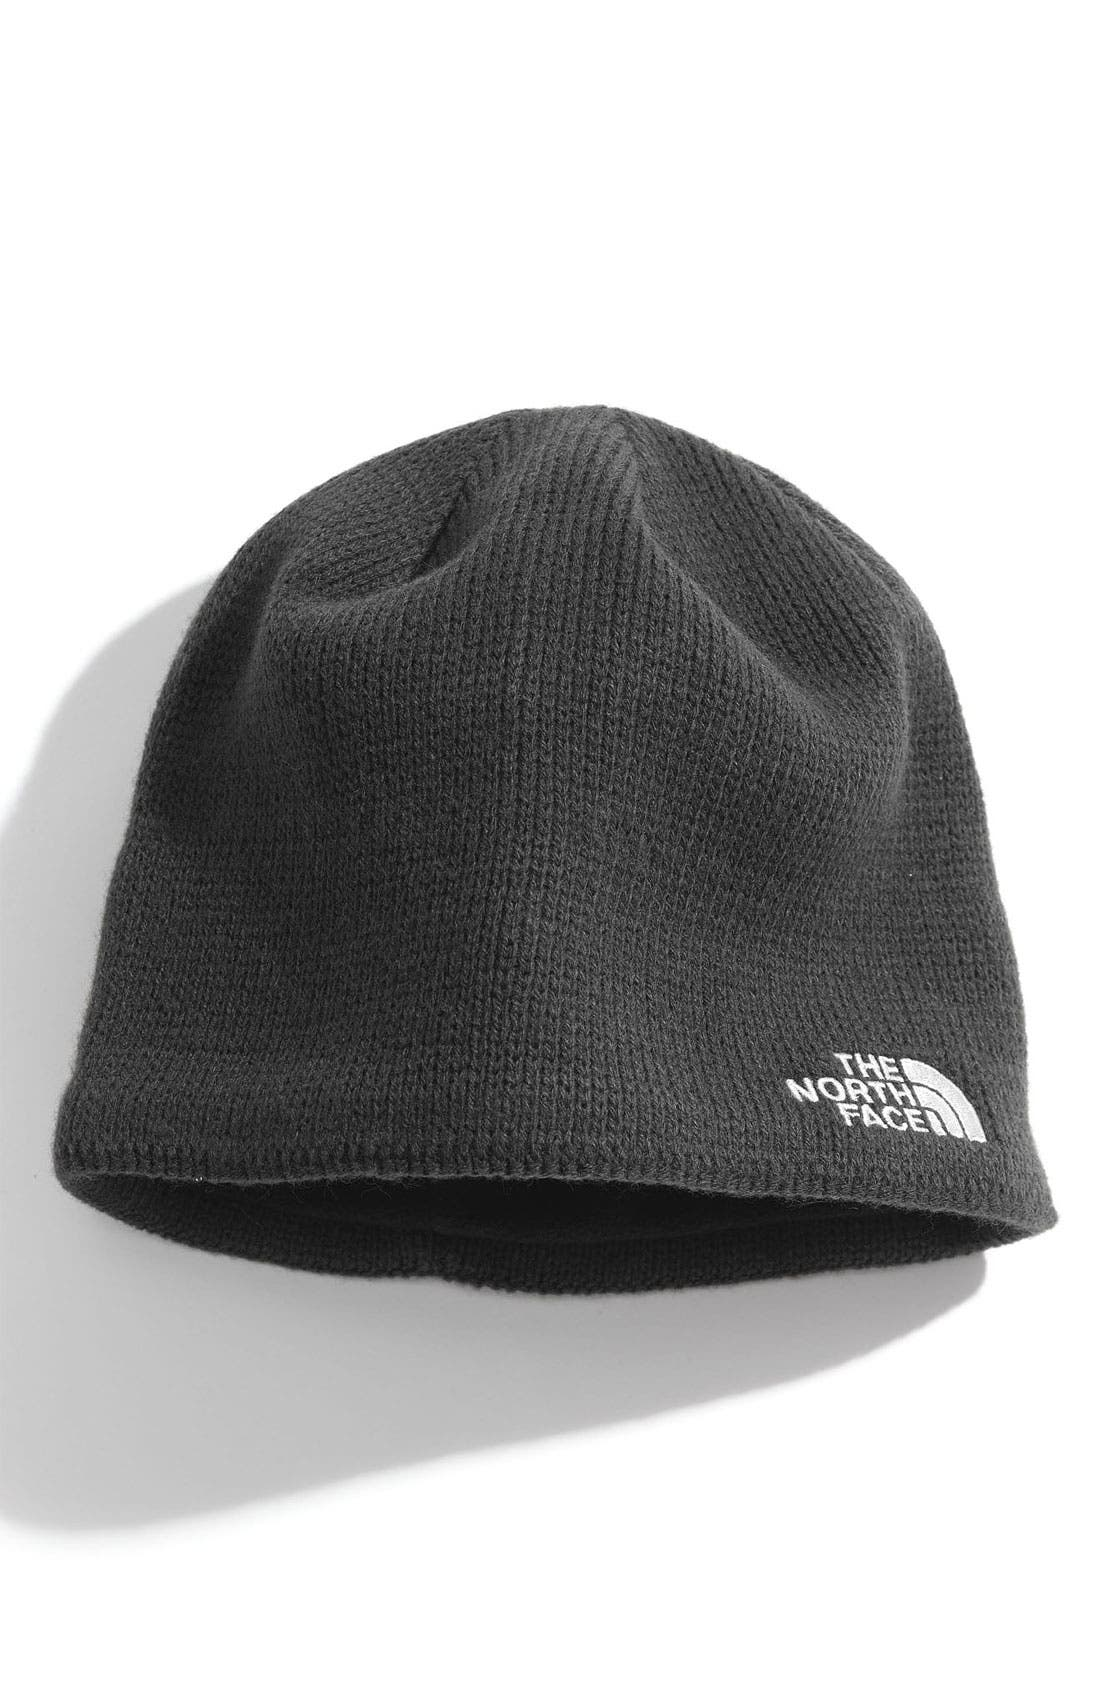 Main Image - The North Face Bones Fleece Lined Beanie